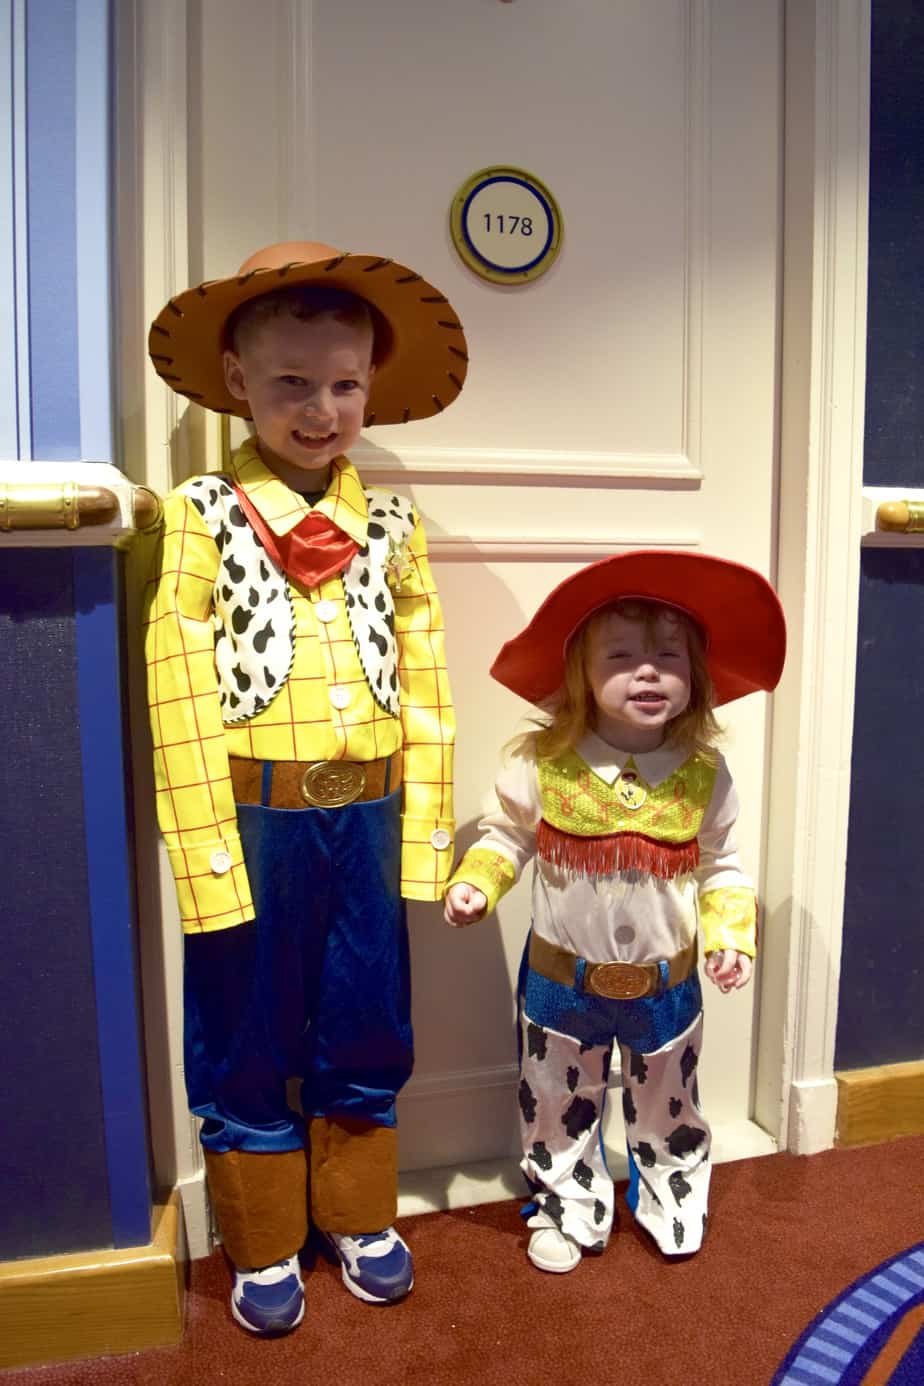 B and W all ready for Buffalo Bill's Wild west show in Woody and Jessie outfits